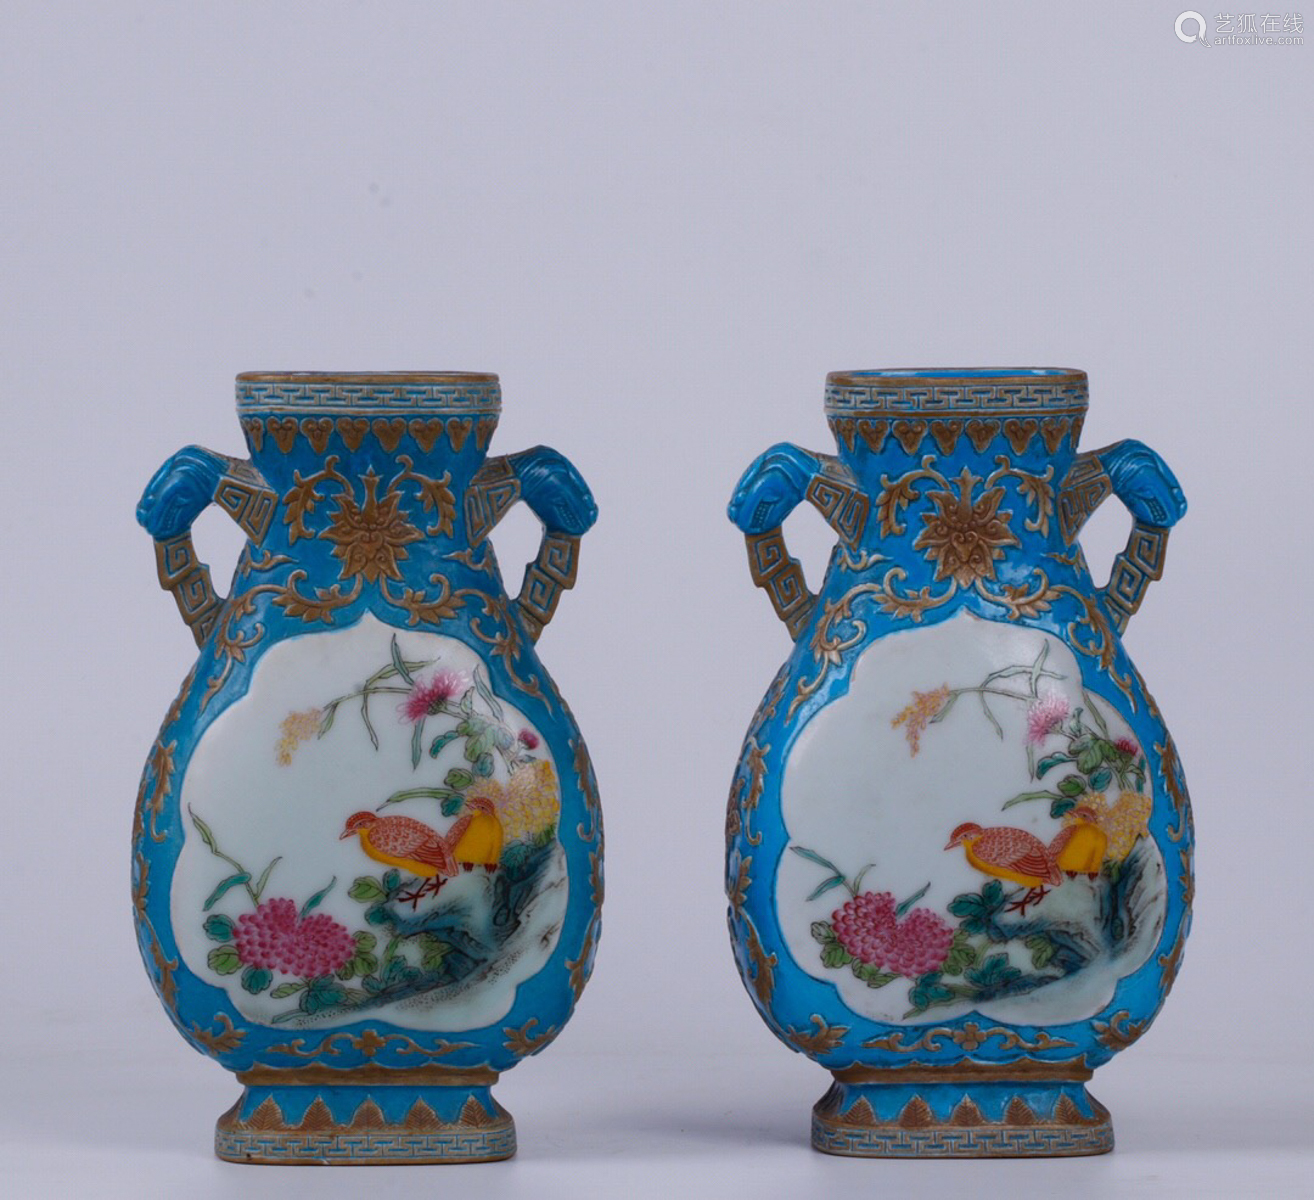 A PAIR OF FALANG GLAZED DOUBLE-EAR FLAT BOTTLES